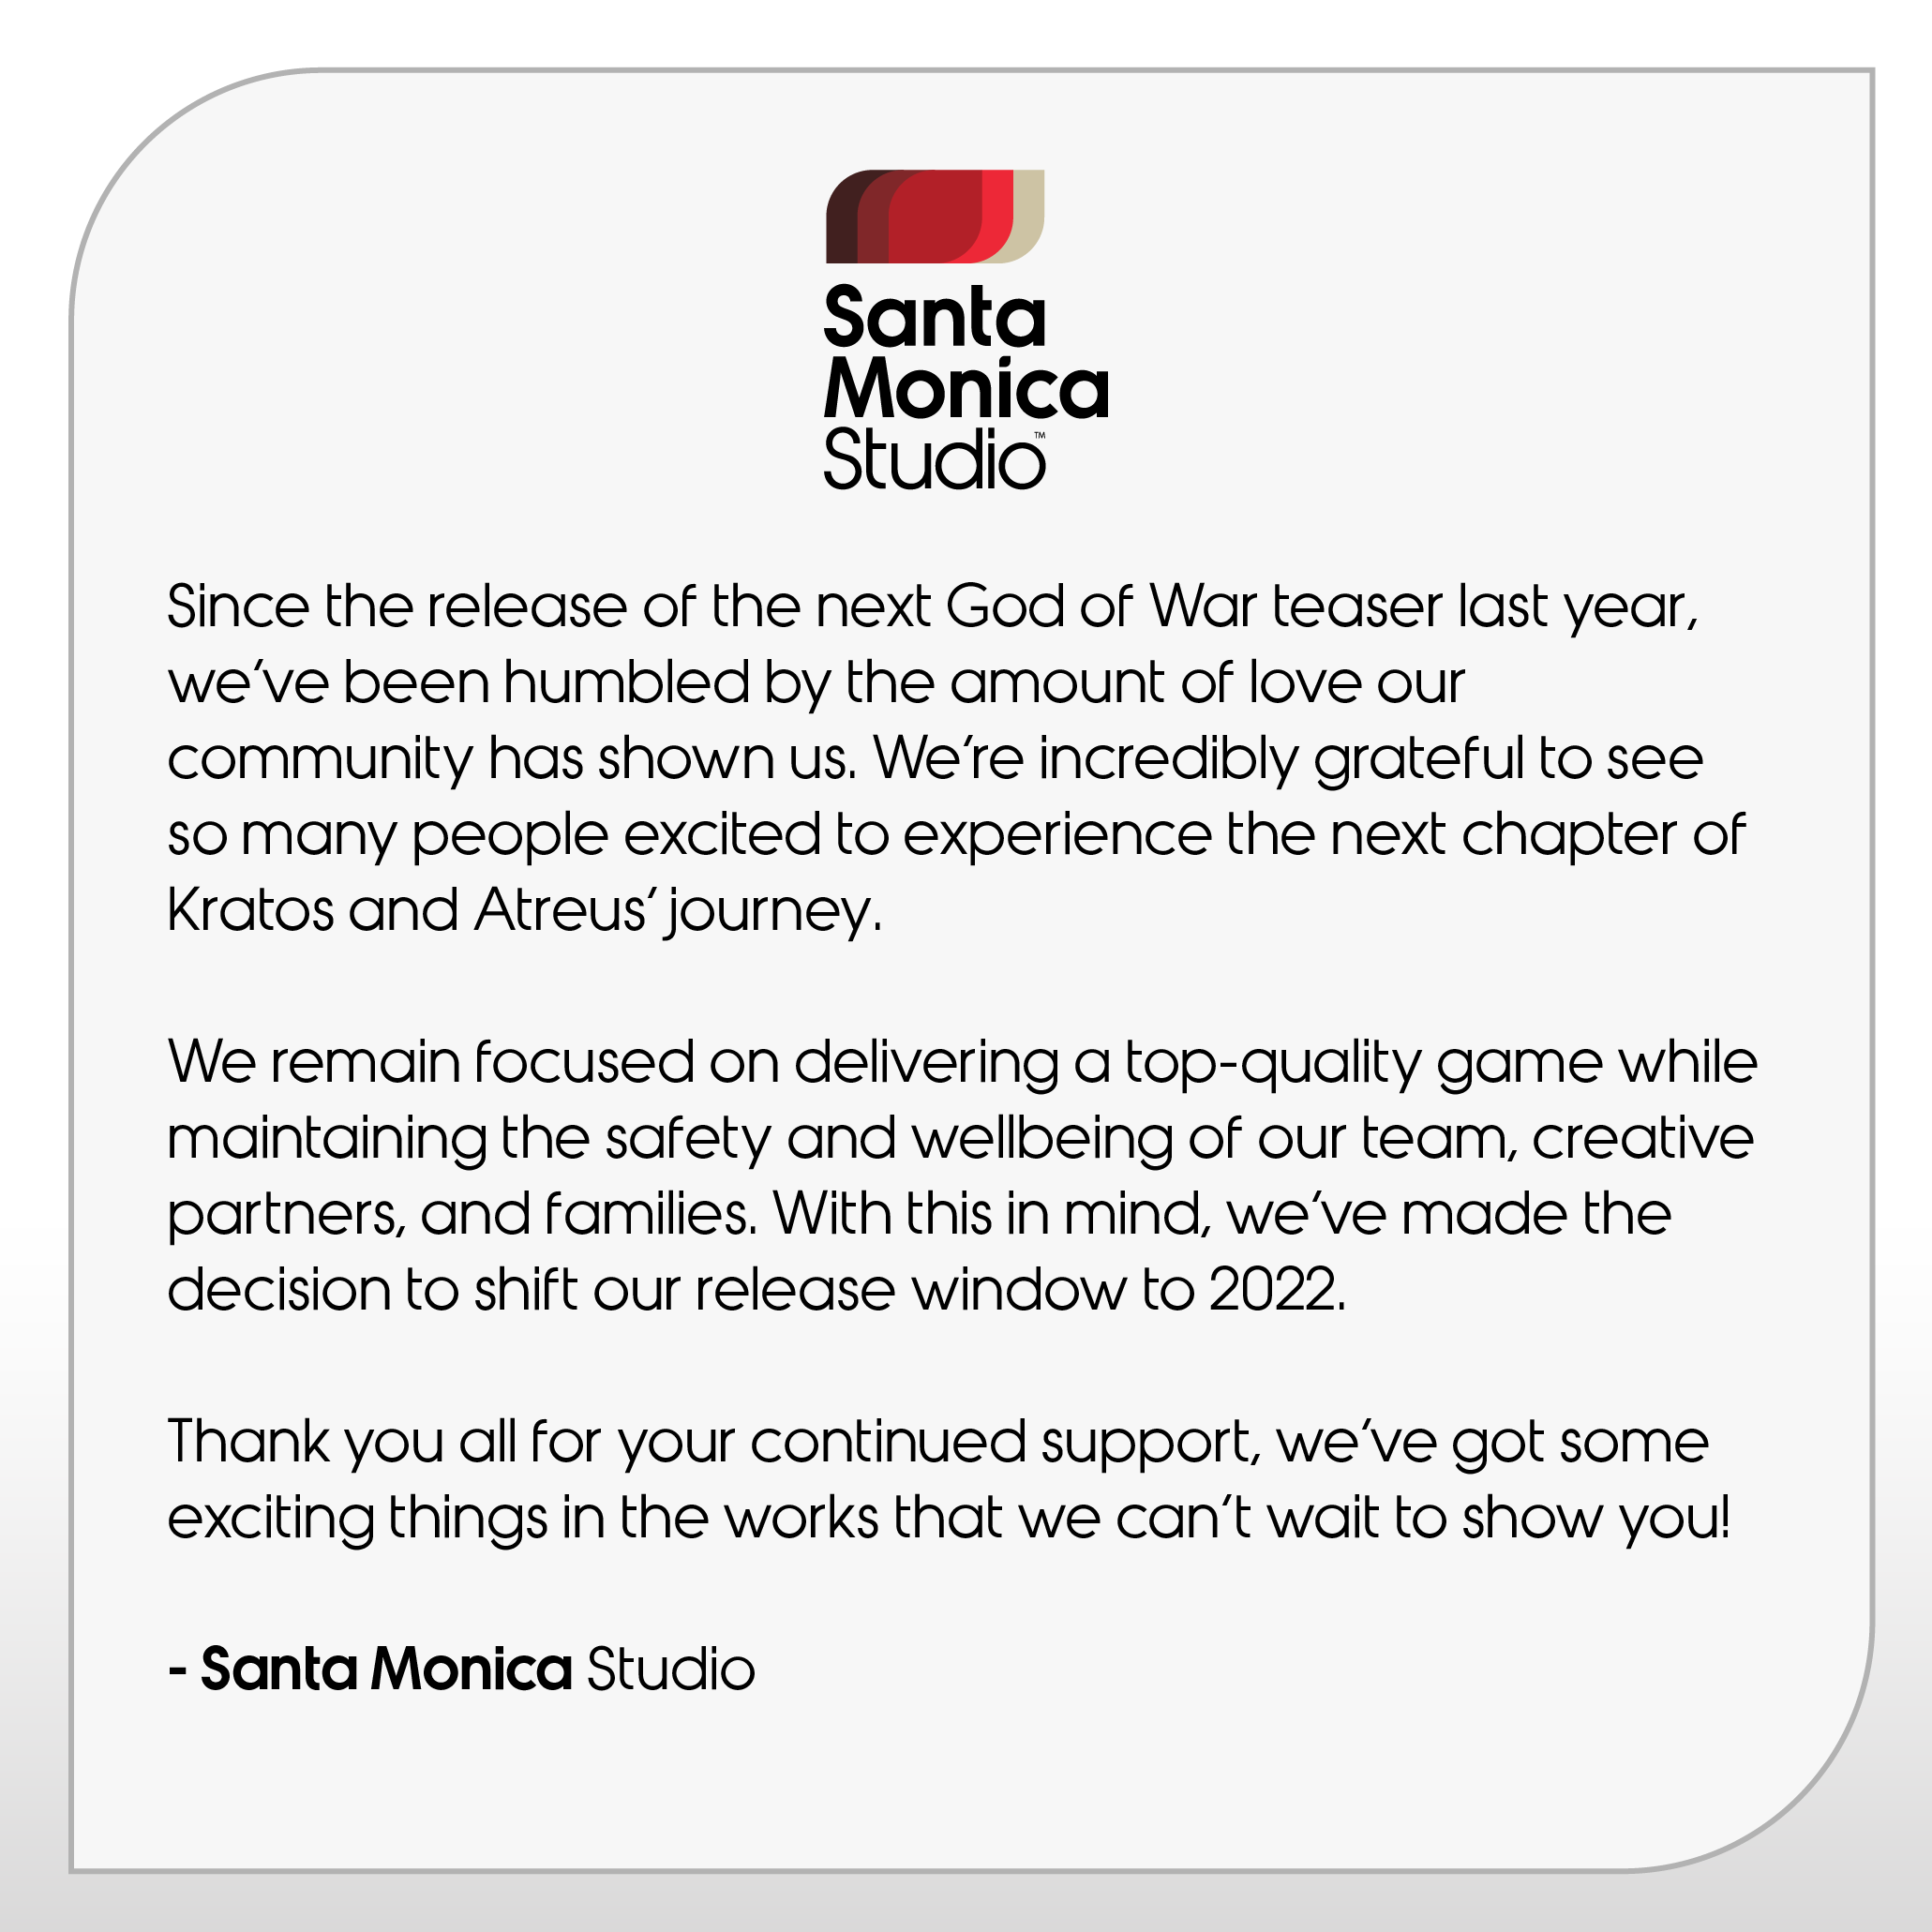 An announcement from Santa Monica Studio that the next God of War will shift it's release window to 2022.